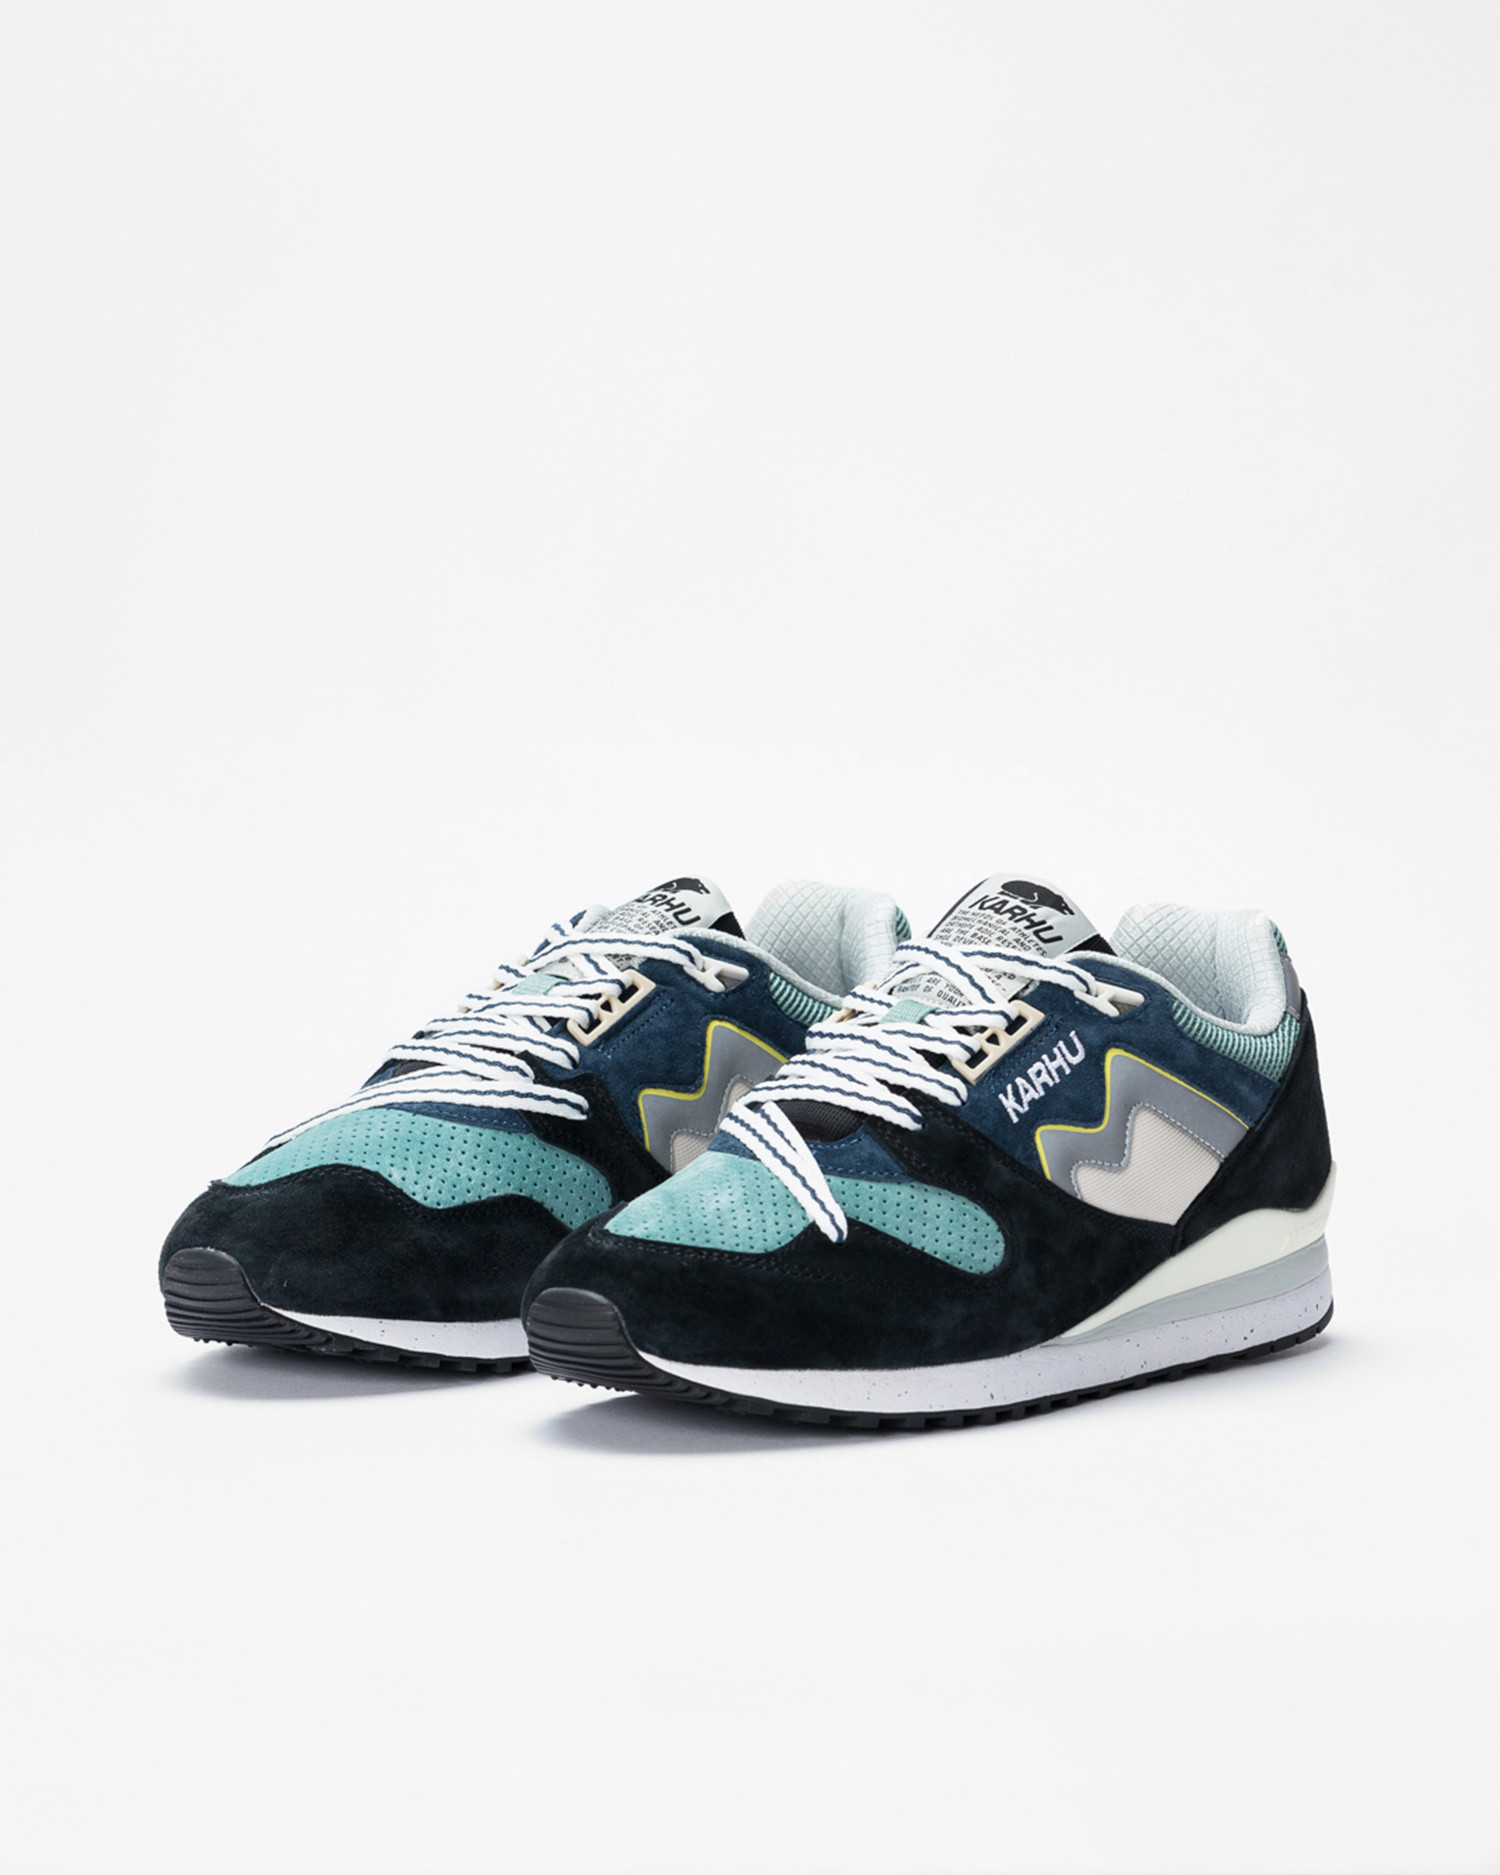 Karhu Synchron Classic Jet Black/Blue Wing Teal